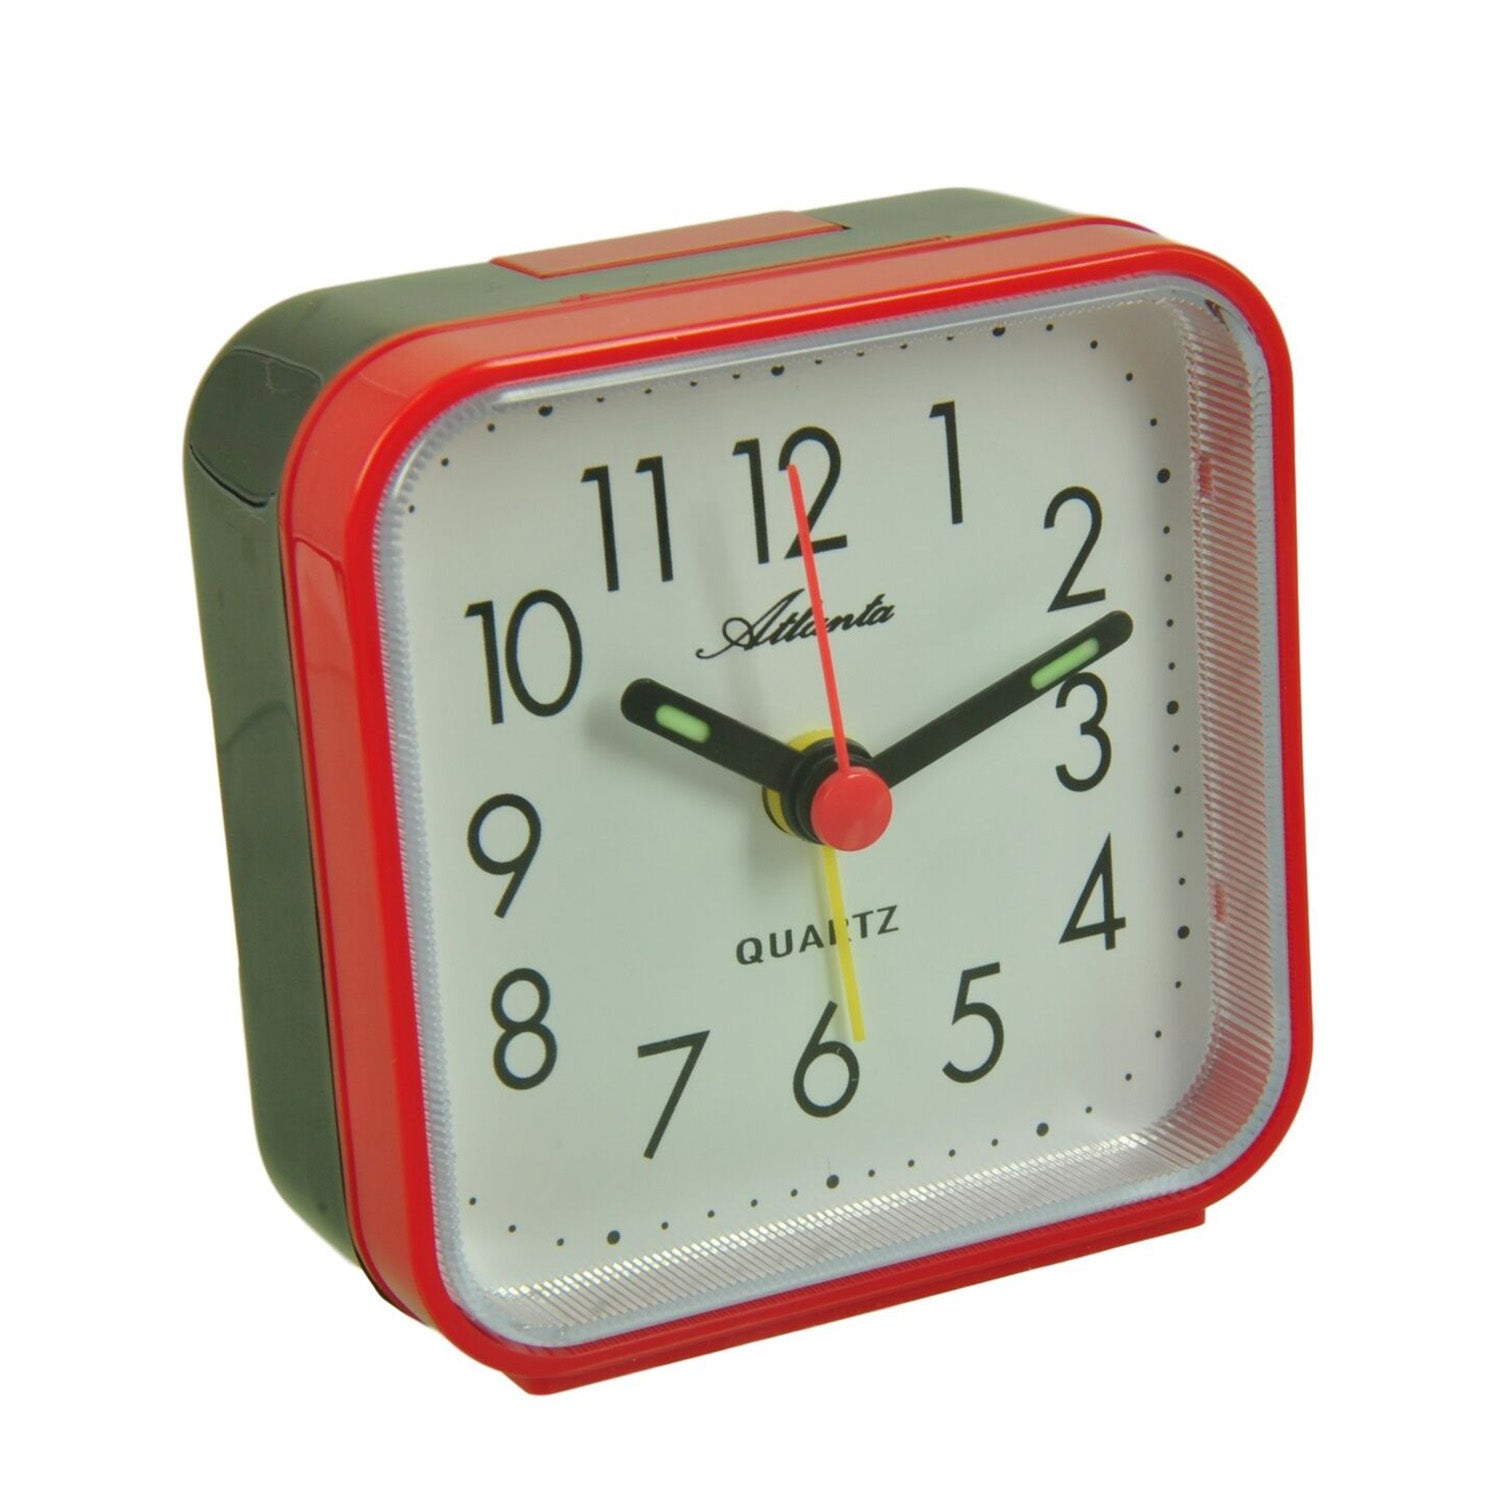 Atlanta Quartz Alarm Clock-AN904